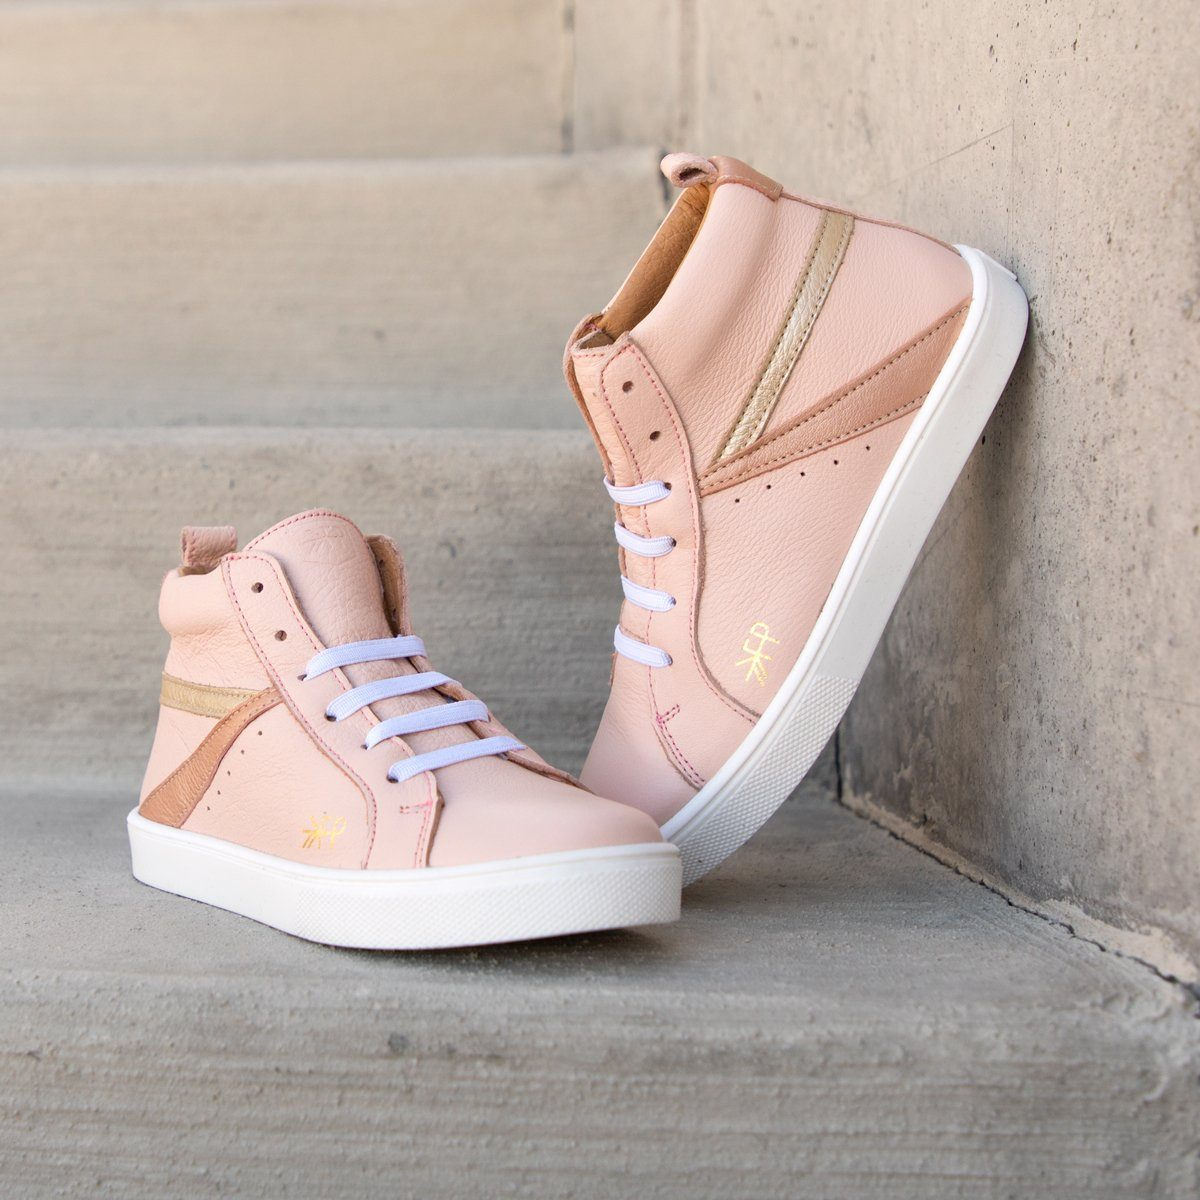 Blush High Top Sneaker Kids - High Top Sneaker Kids Sneakers